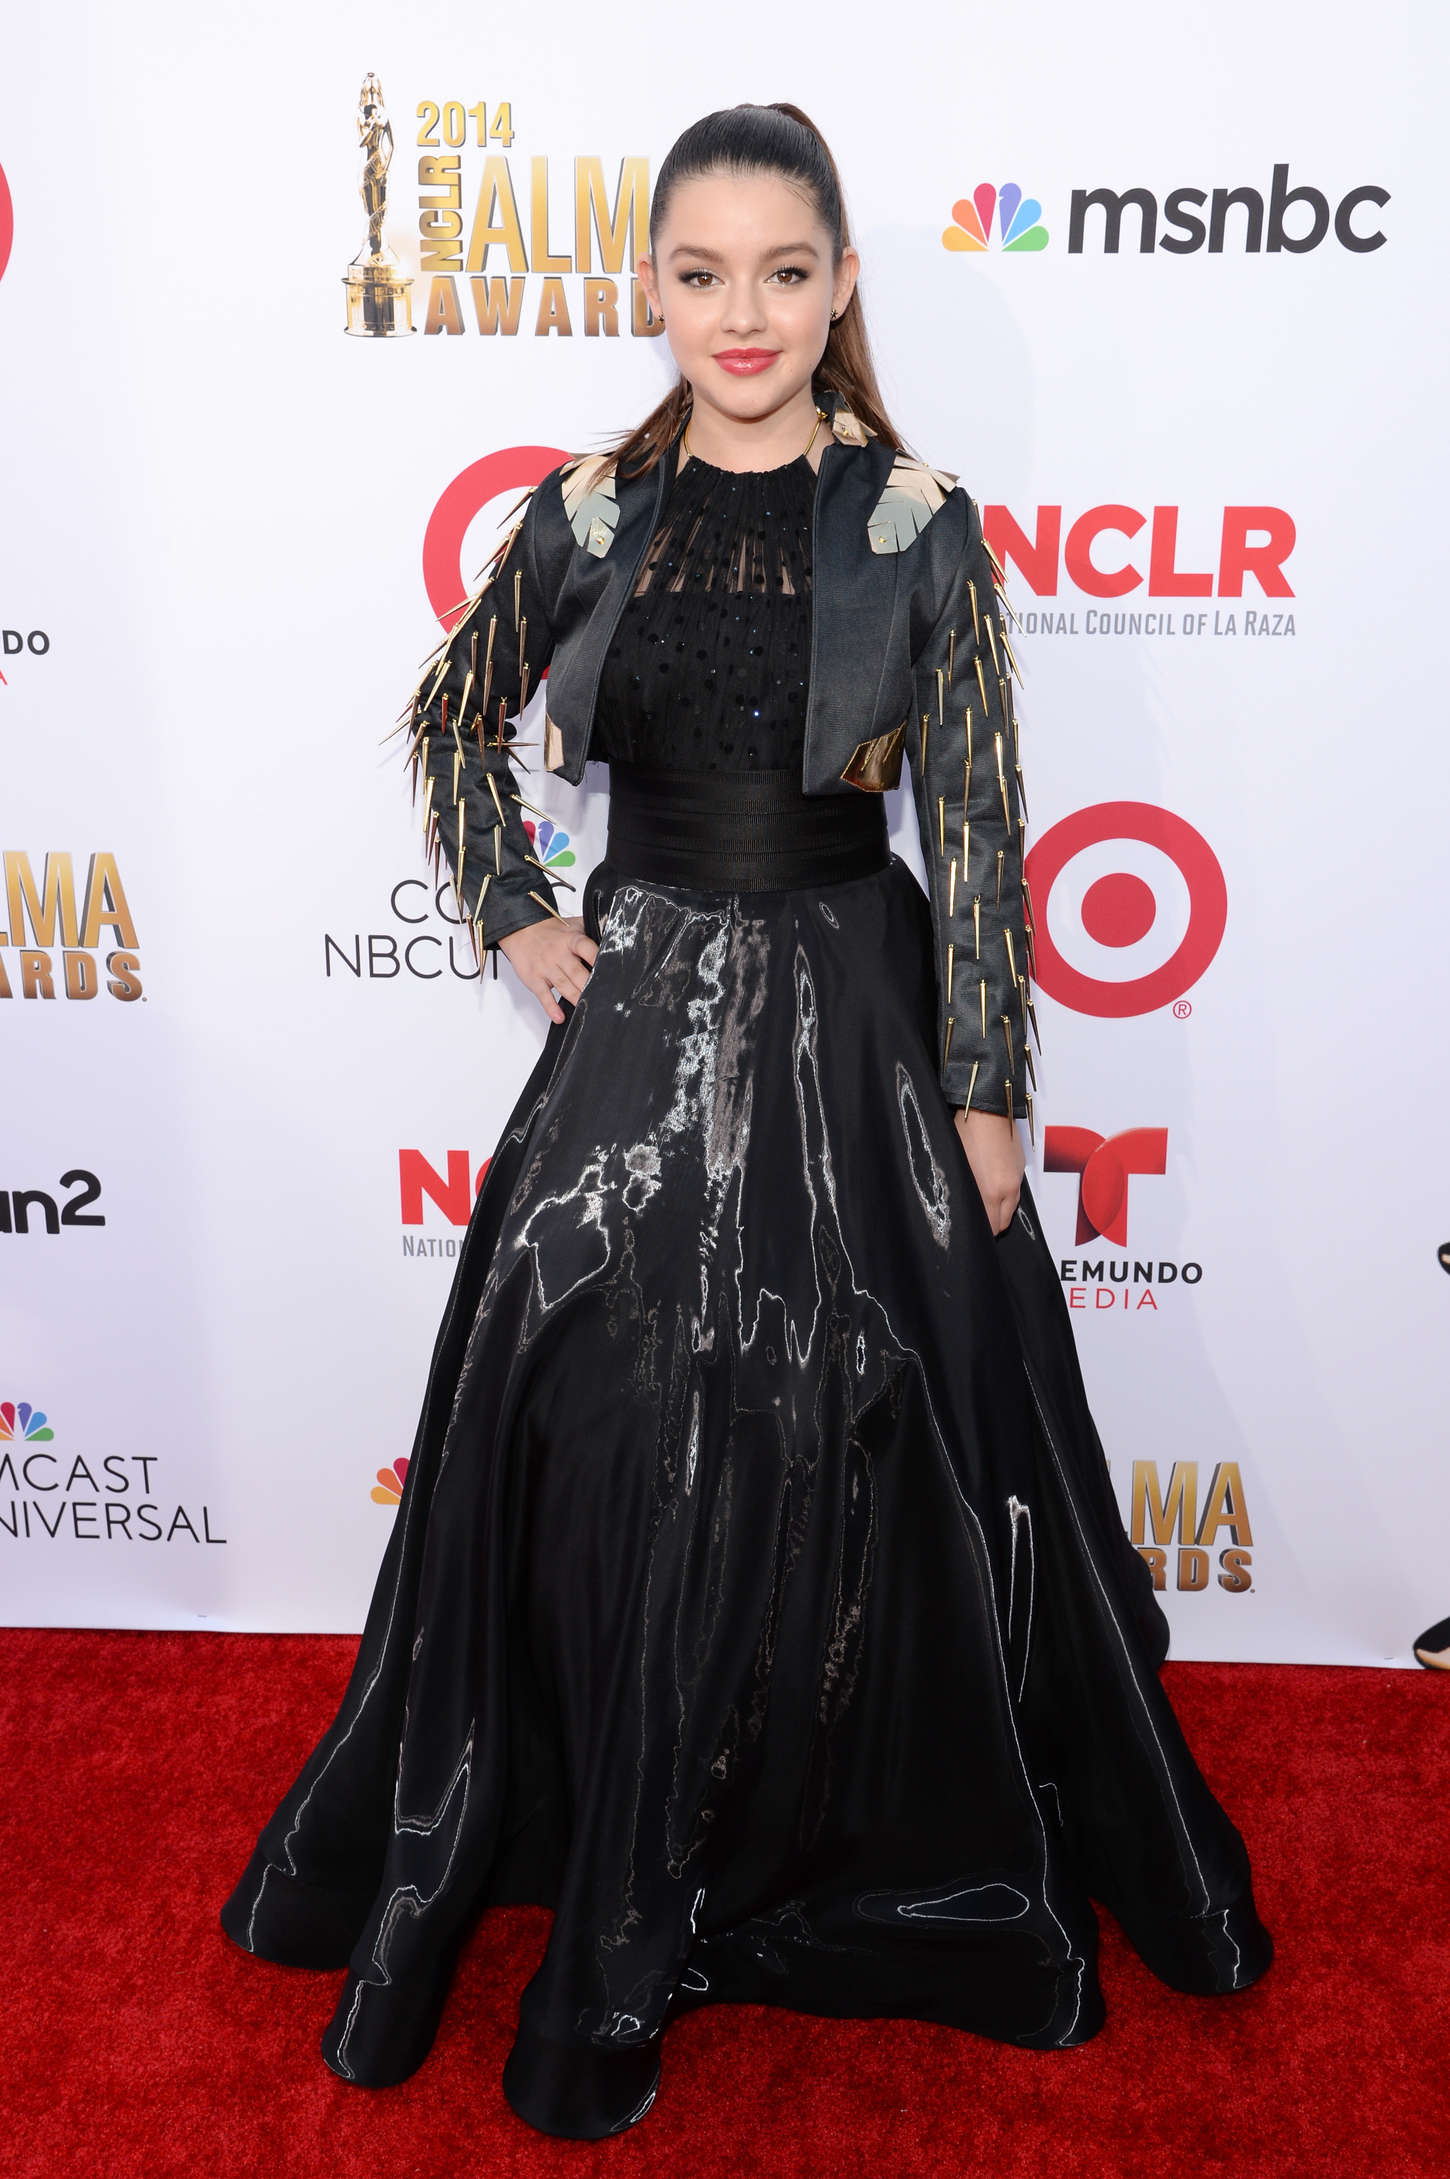 Fatima Ptacek at NCLR ALMA Awards